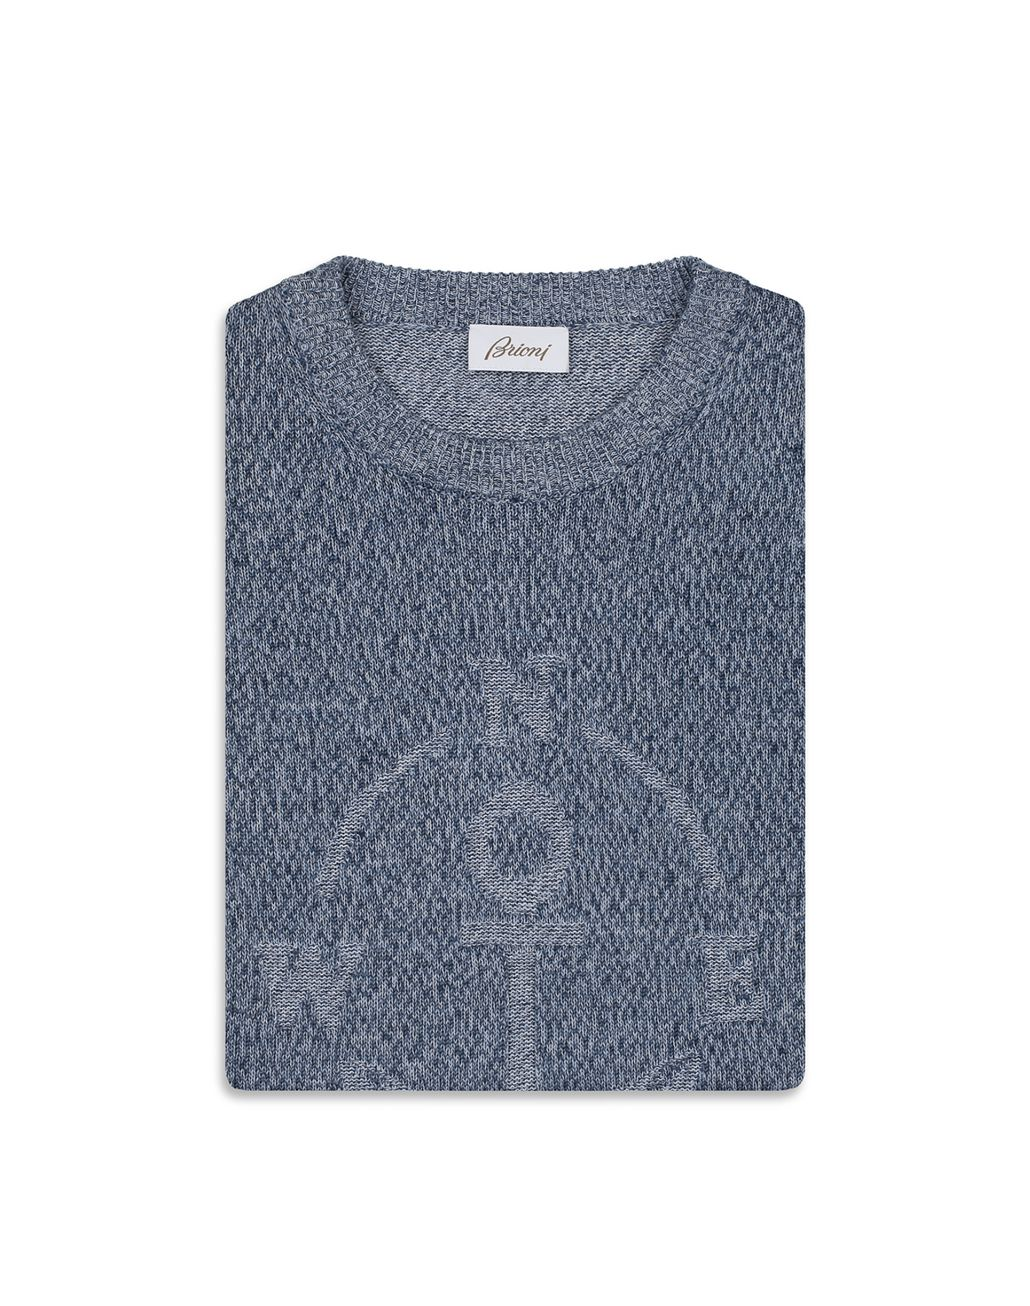 BRIONI Light Blue Mouline Anchor Sweater Knitwear [*** pickupInStoreShippingNotGuaranteed_info ***] e